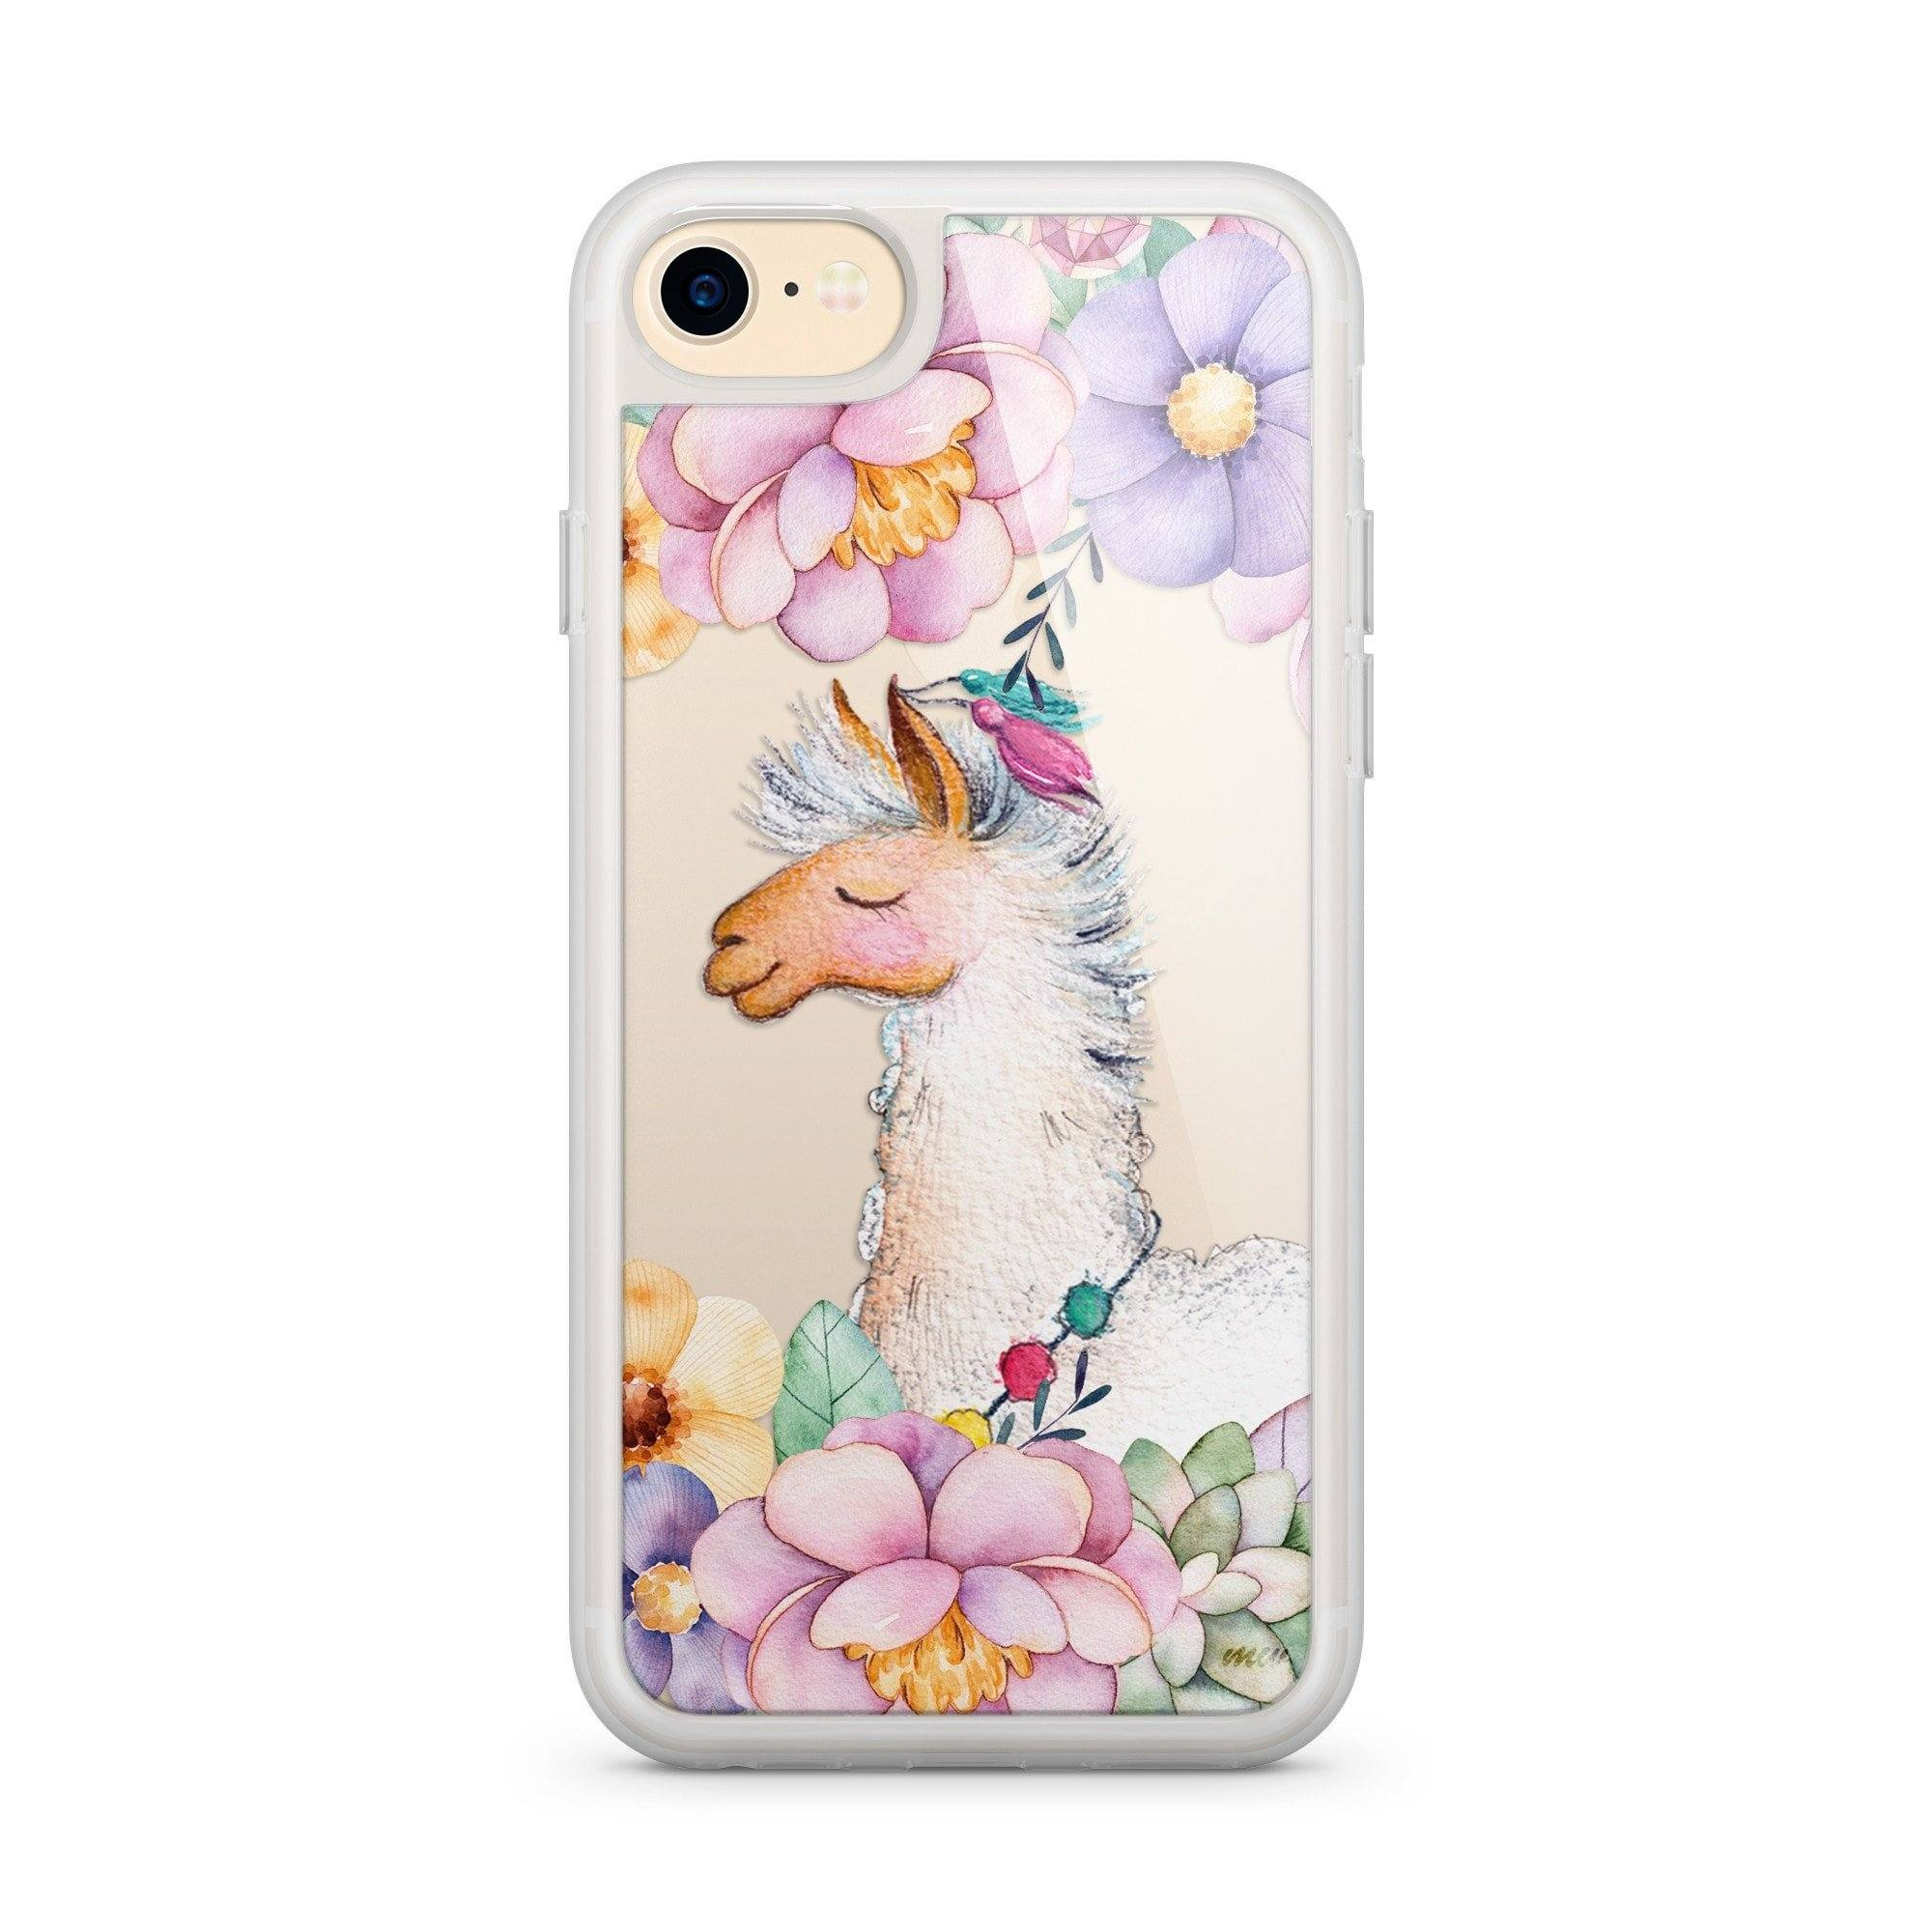 Premium Milkyway iPhone Case - Floral Llama